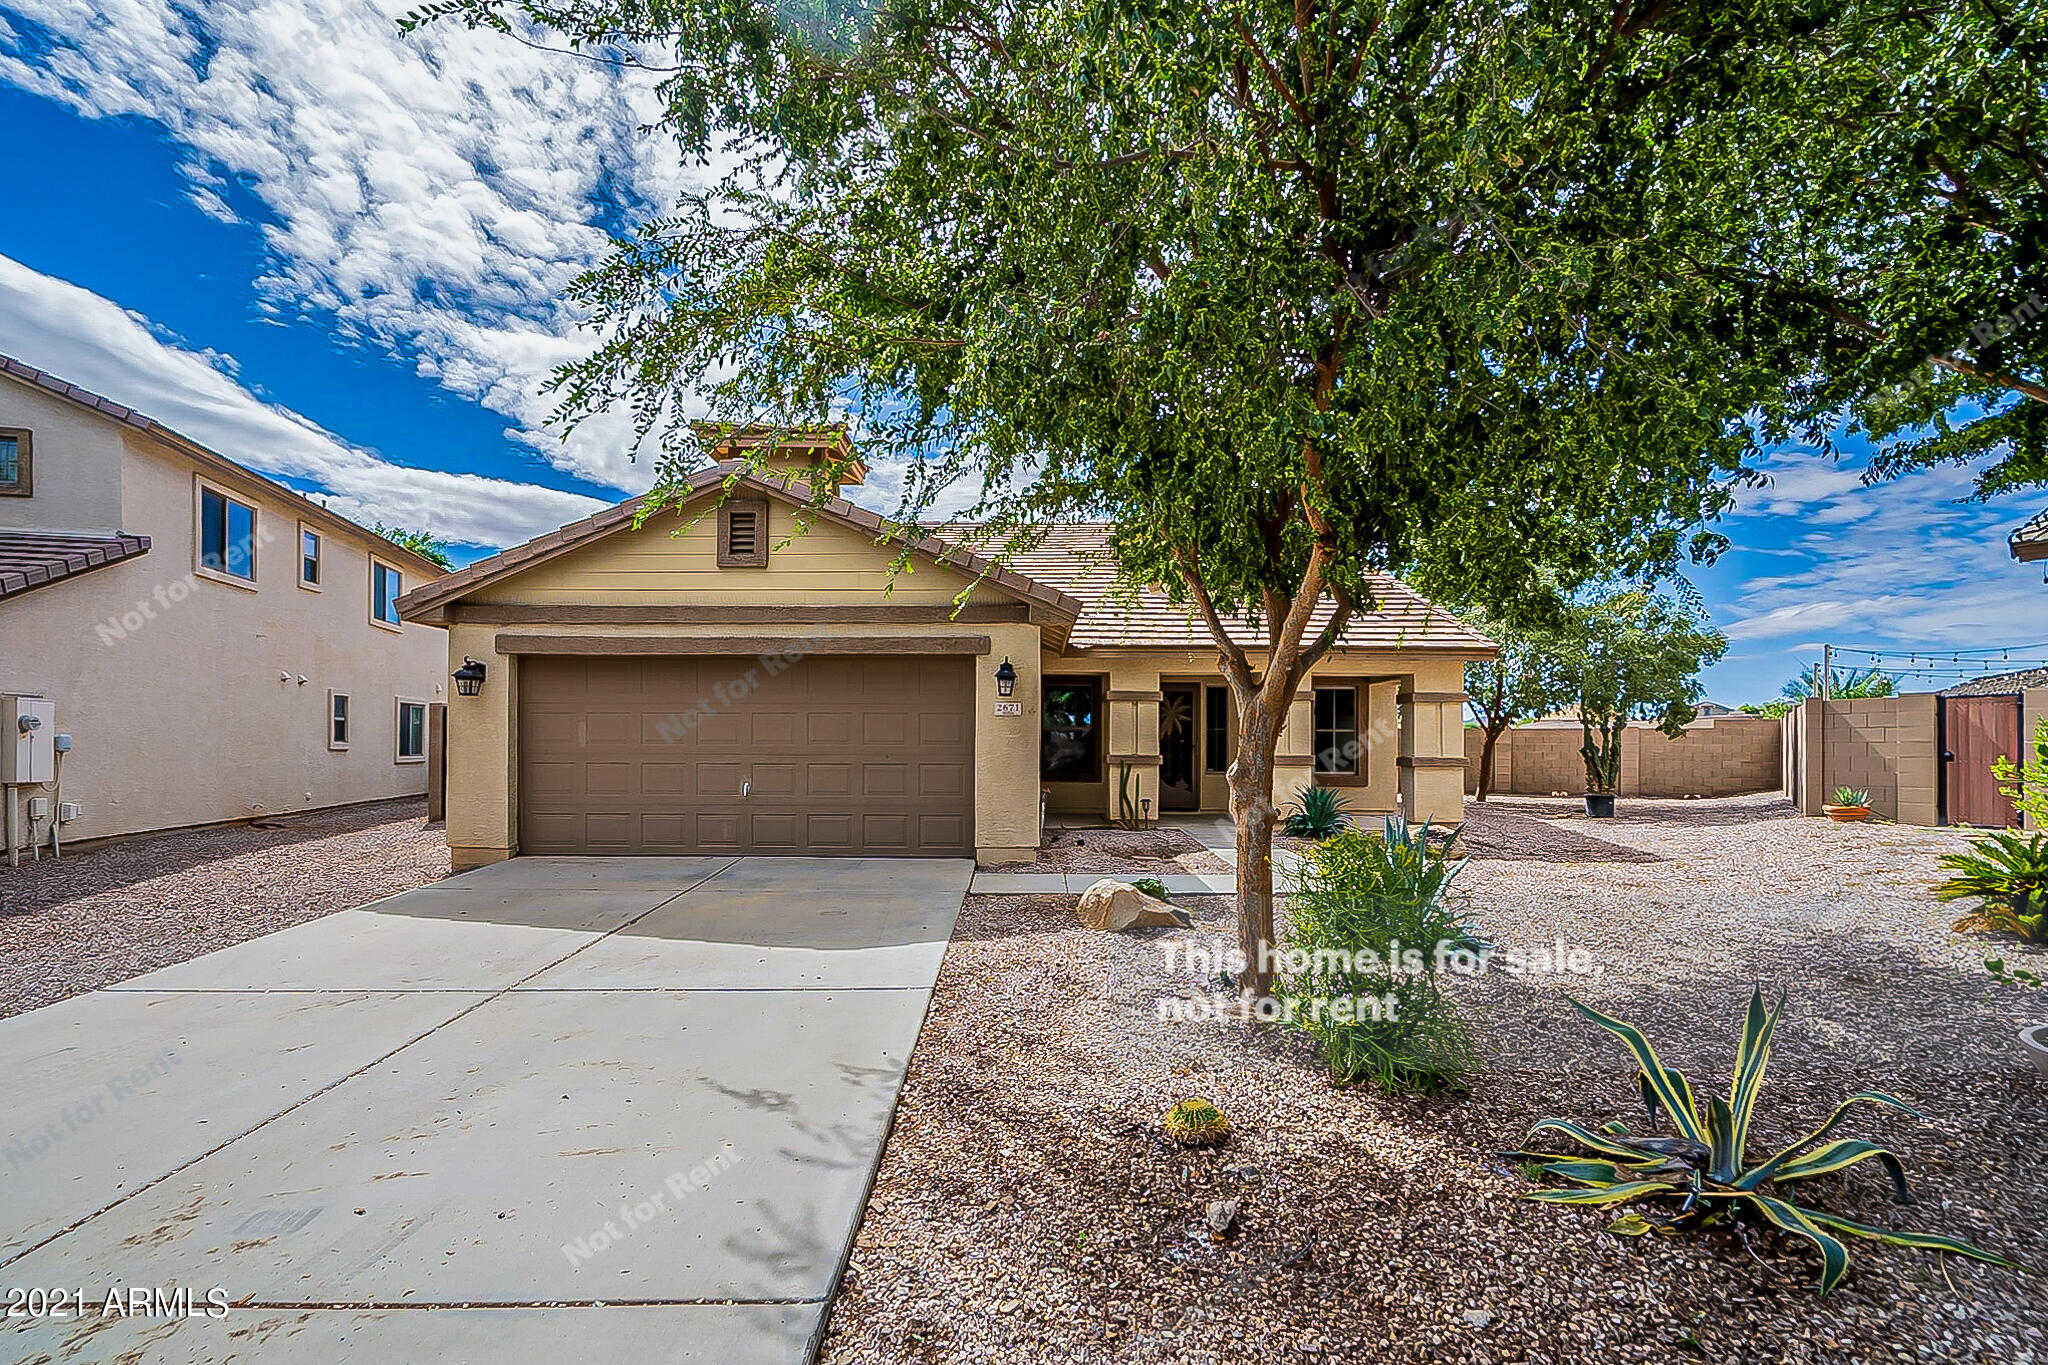 $475,000 - 4Br/2Ba - Home for Sale in Morning Sun Farms Phase 1, Queen Creek